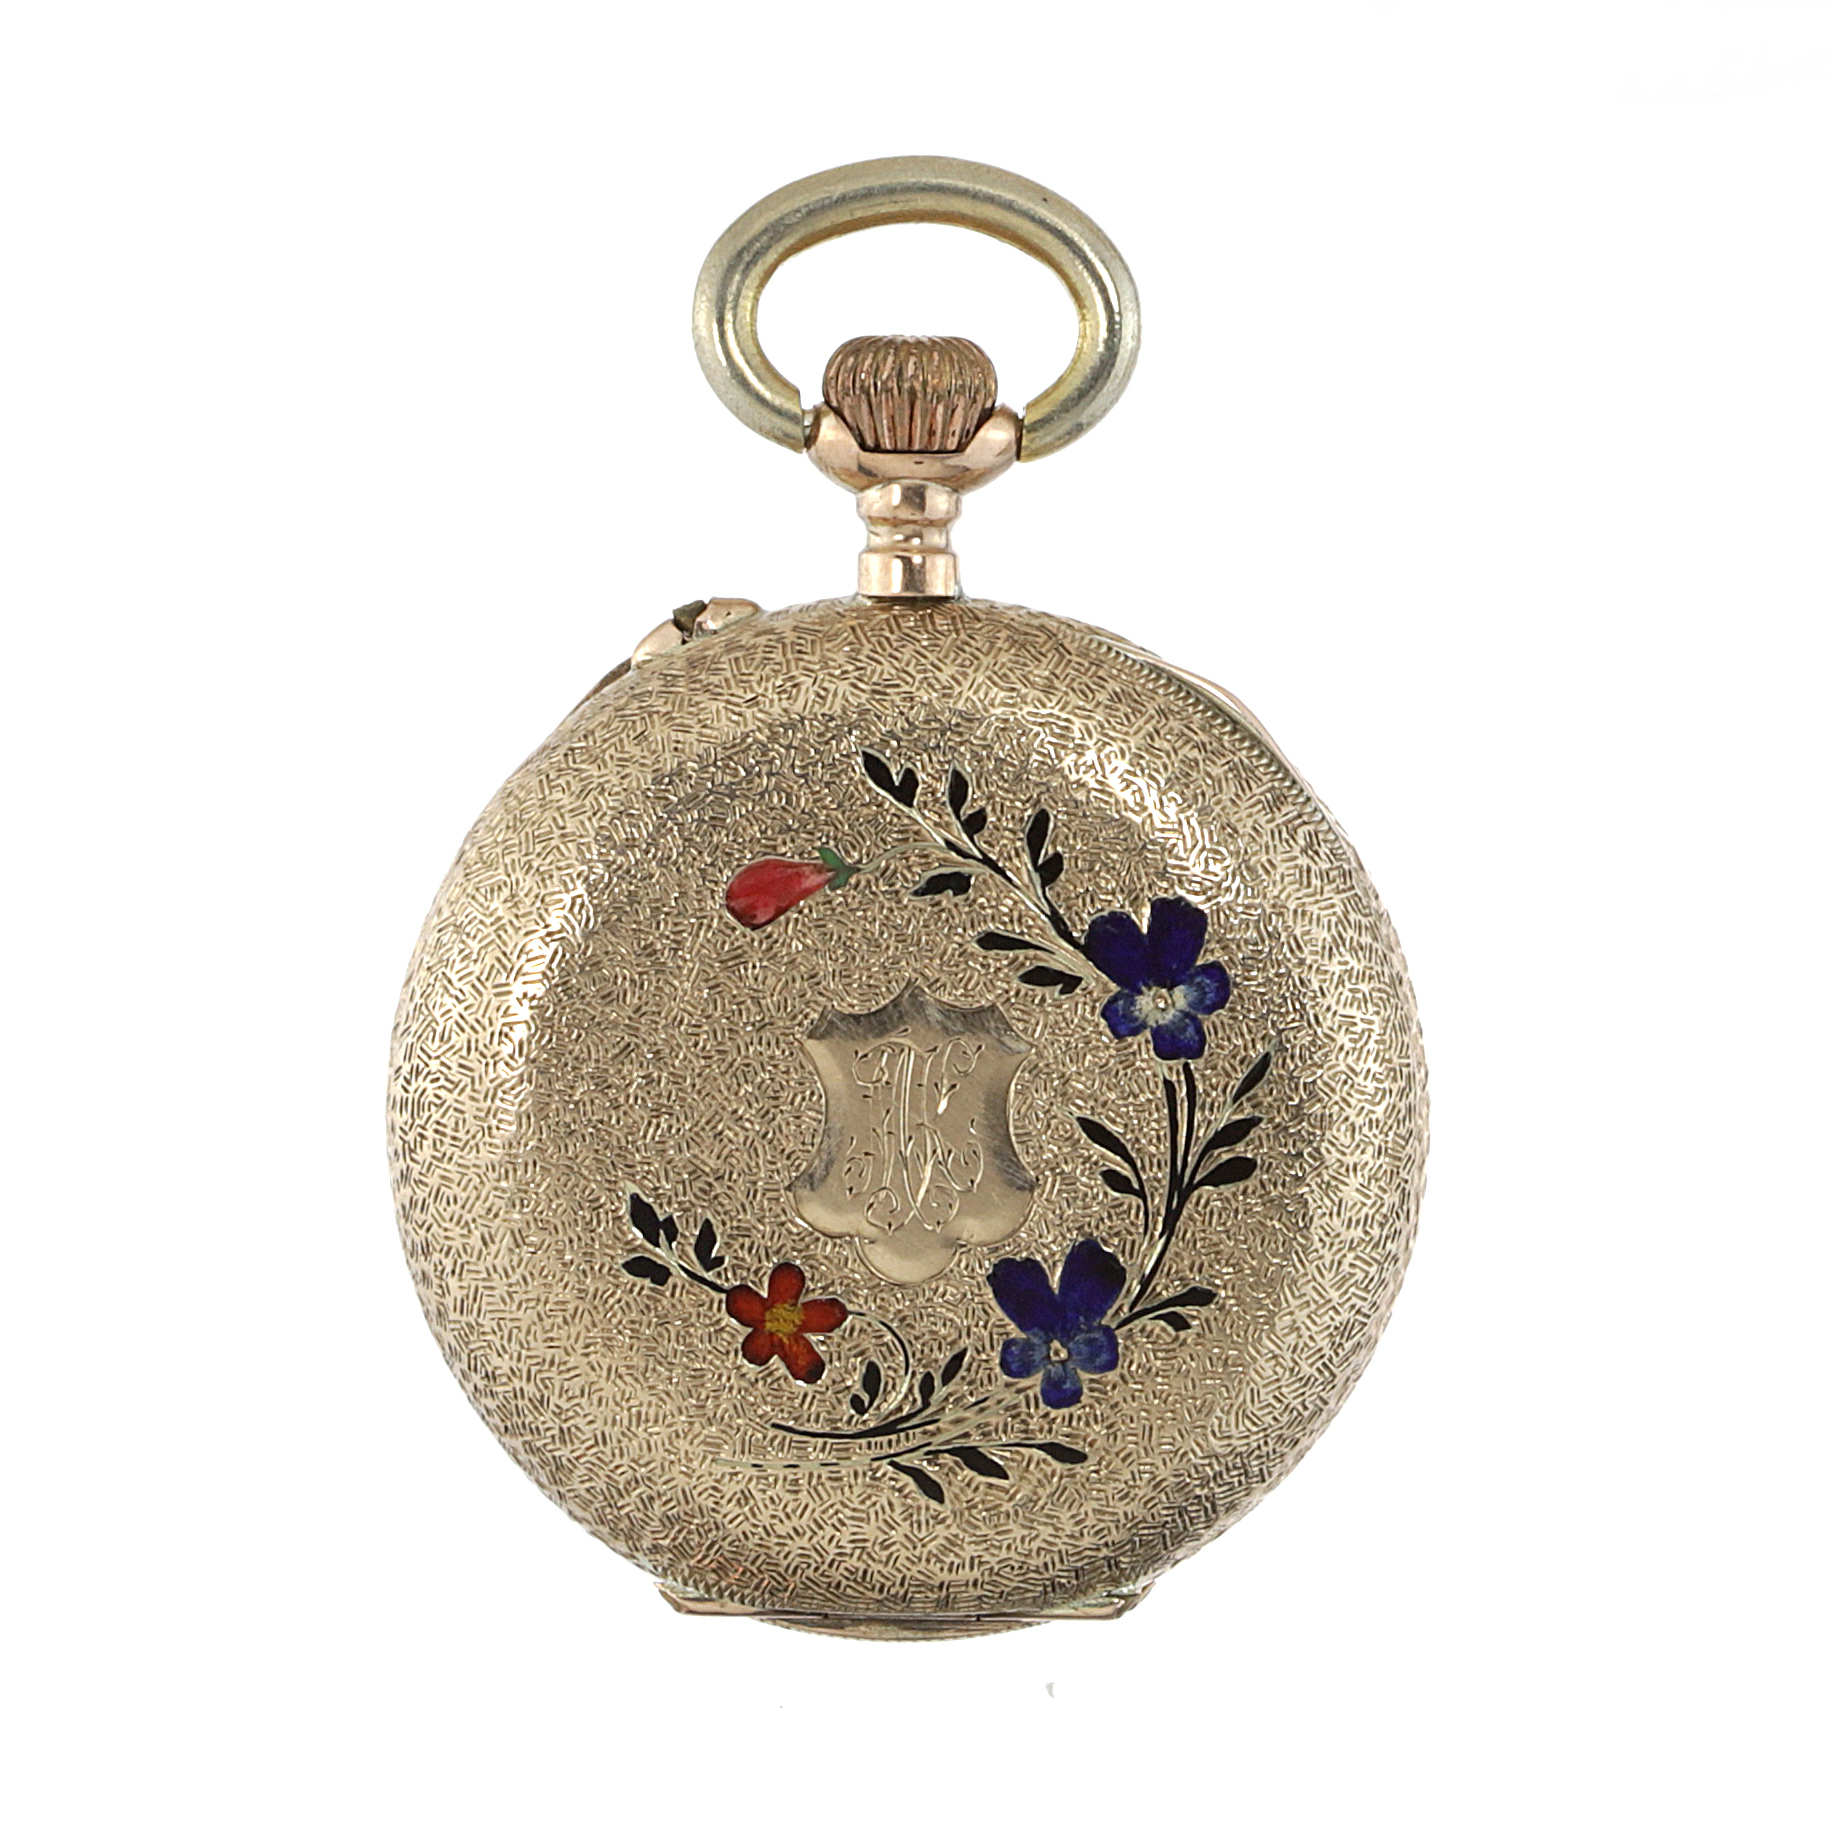 Los 456 - AN ENAMEL POCKET WATCH the circular case decorated with textured engraving and varicoloured enamel